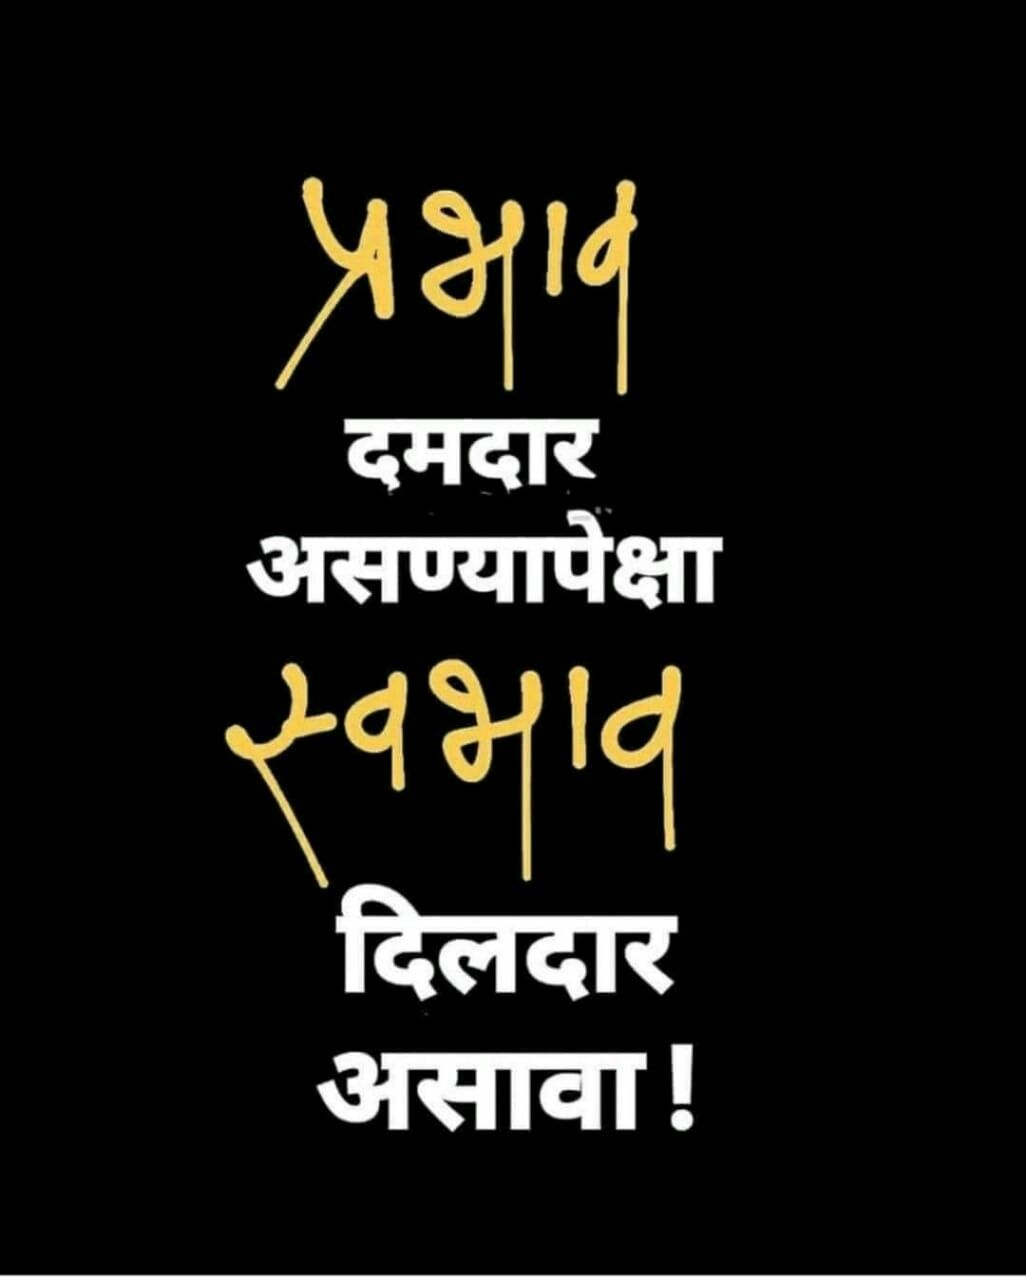 Short Good Thoughts In English With Meaning In Marathi